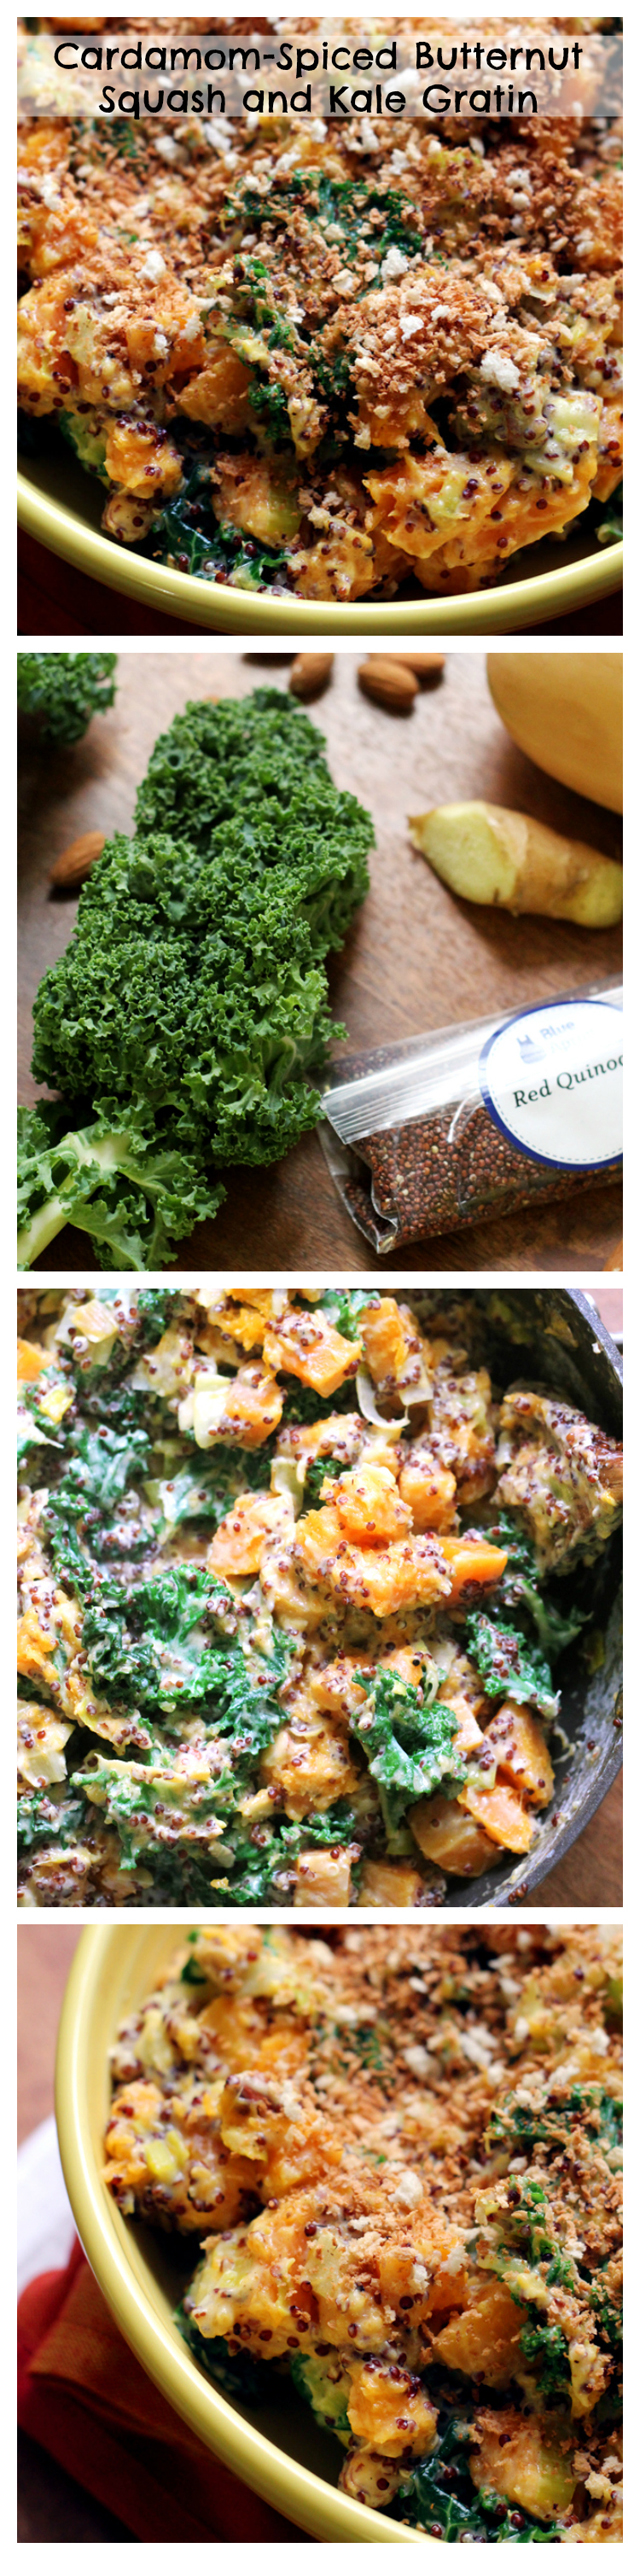 cardamom spiced butternut squash and kale gratin collage